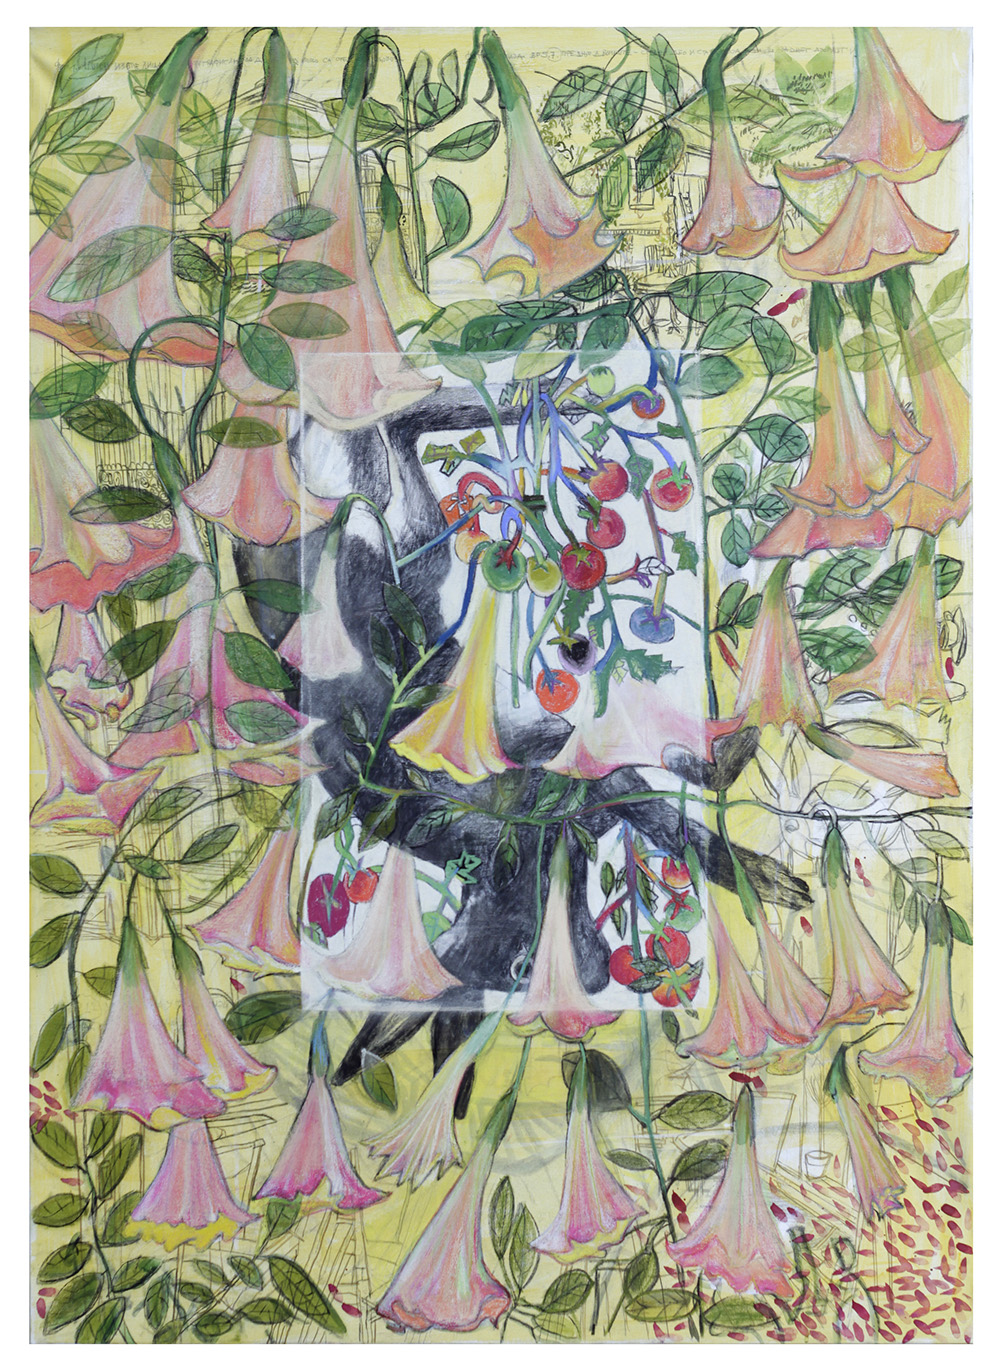 From Picasso's planter (Brugmansia), 2018_Mixed media on canvas_140 x 100 cm